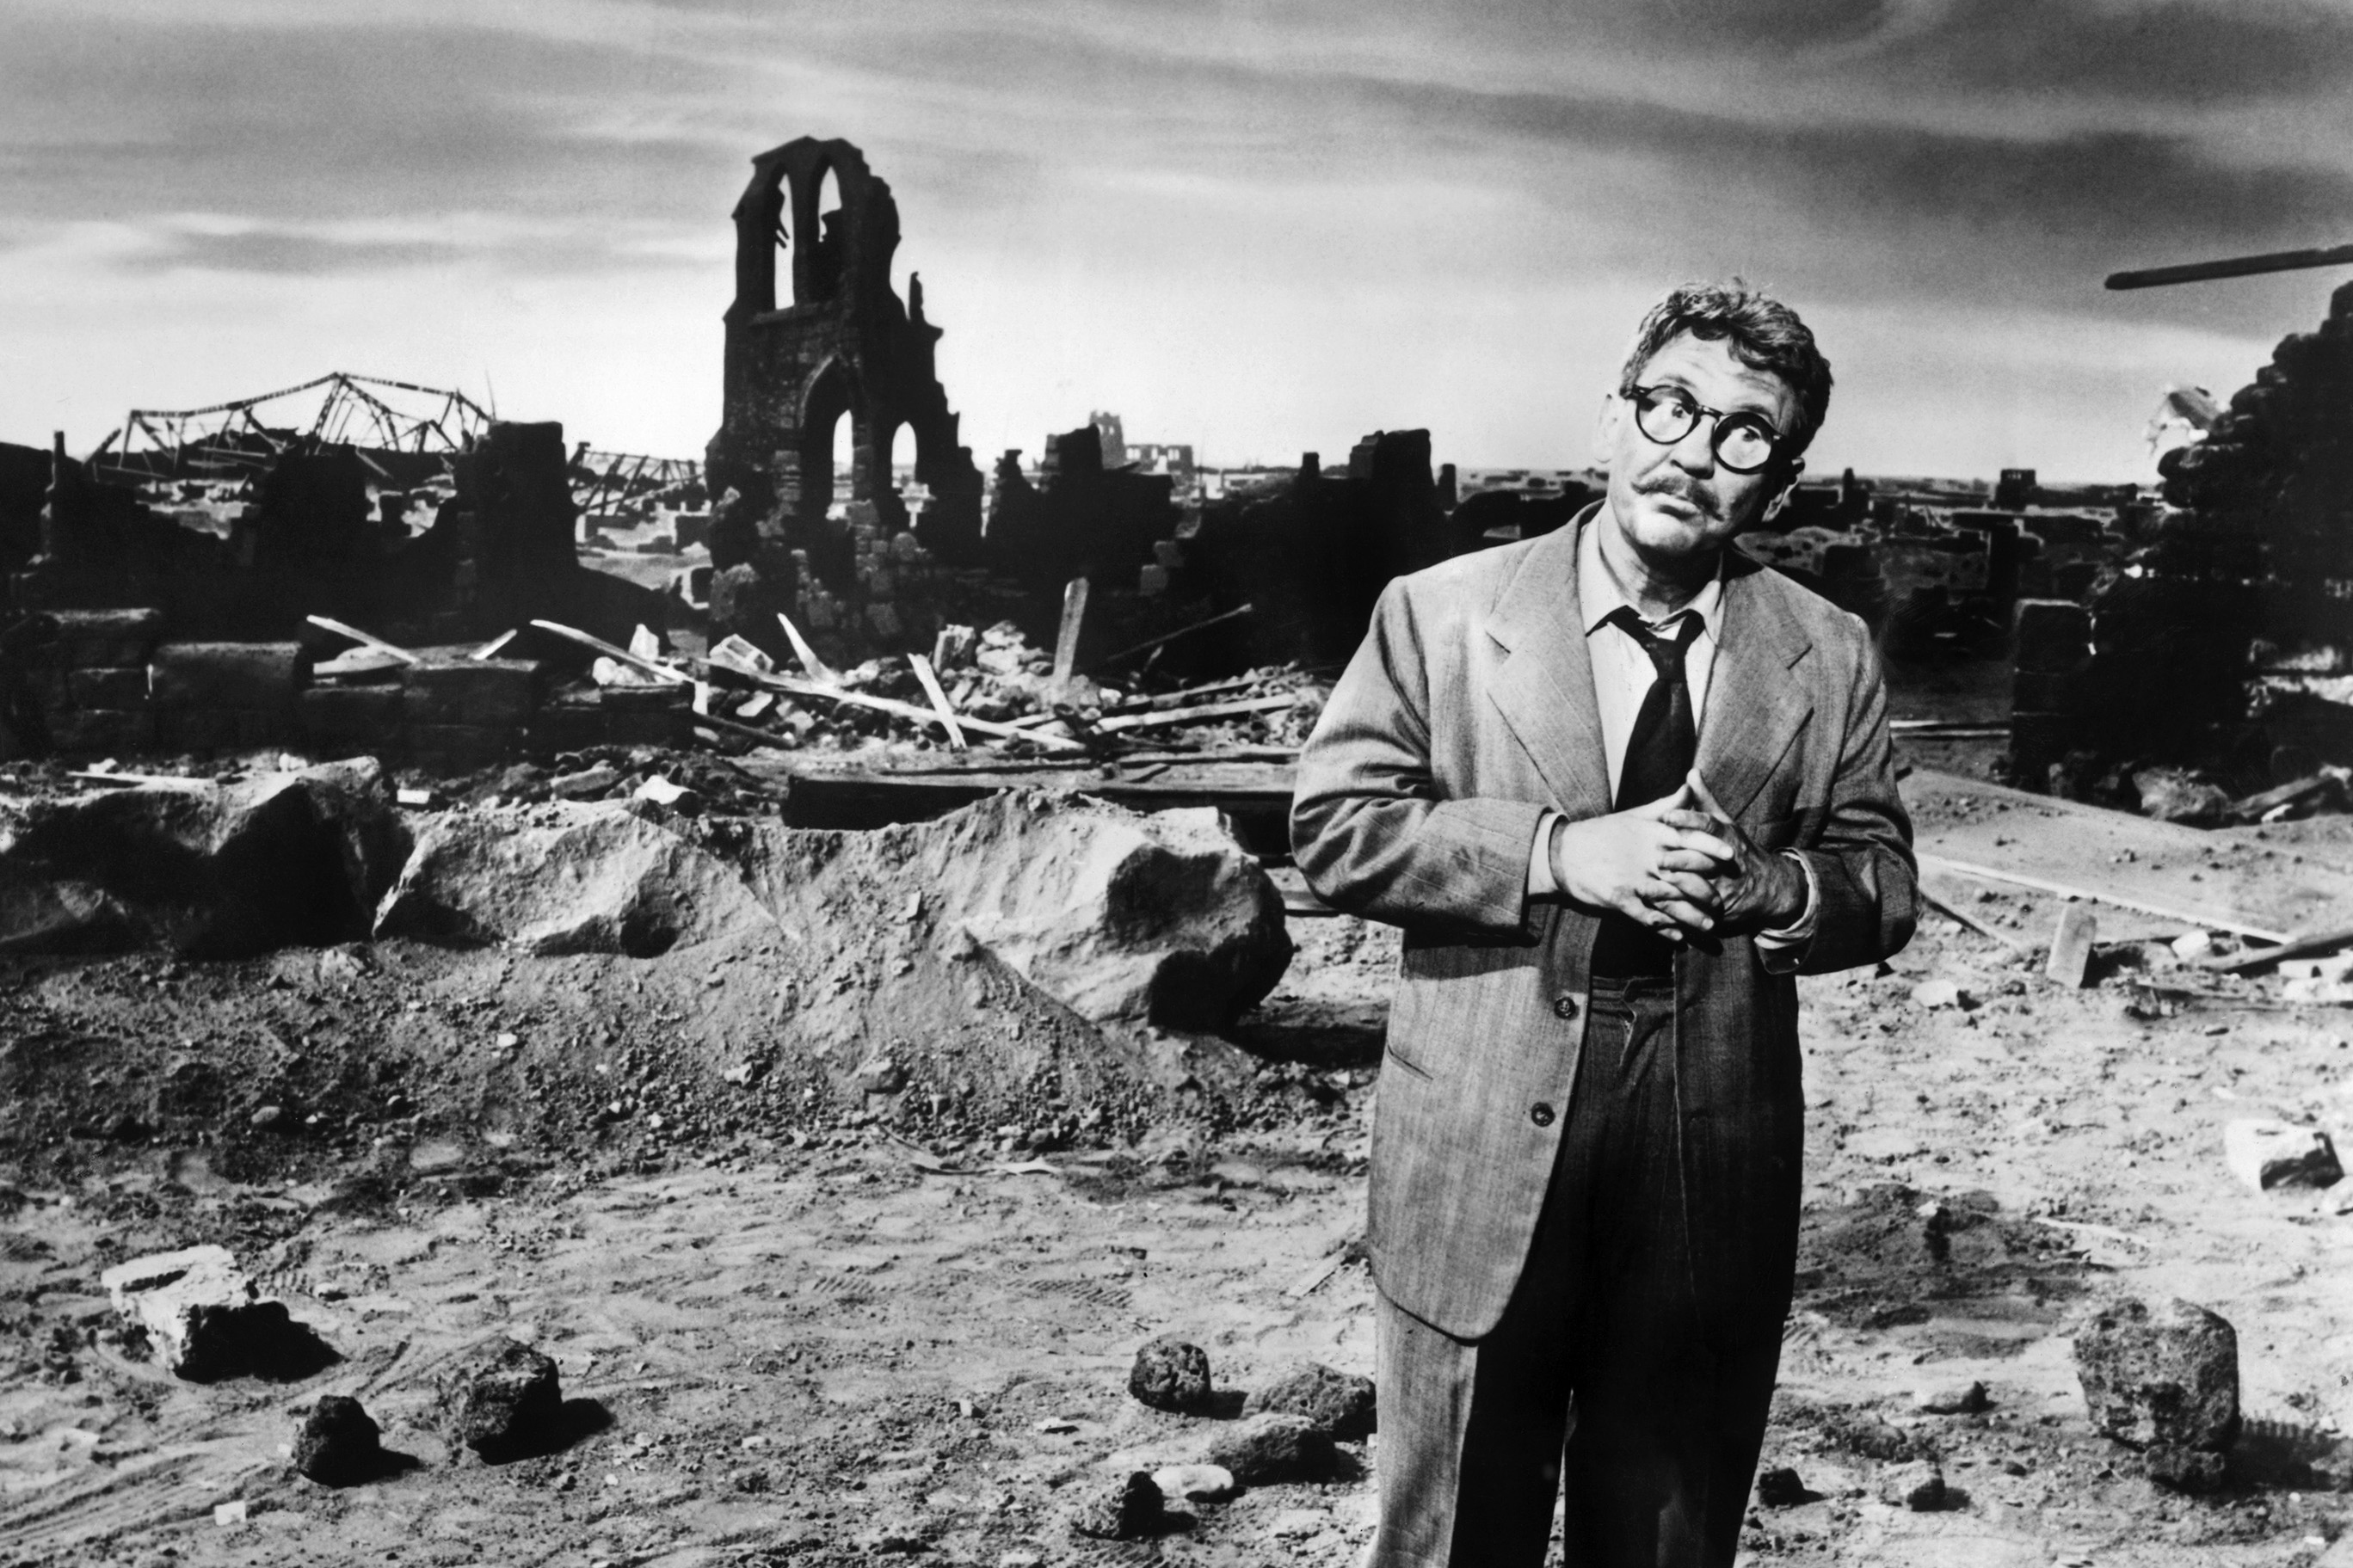 THE TWILIGHT ZONE, Burgess Meredith, 'Time Enough At Last' (Season 1, aired November 20, 1959), 1959